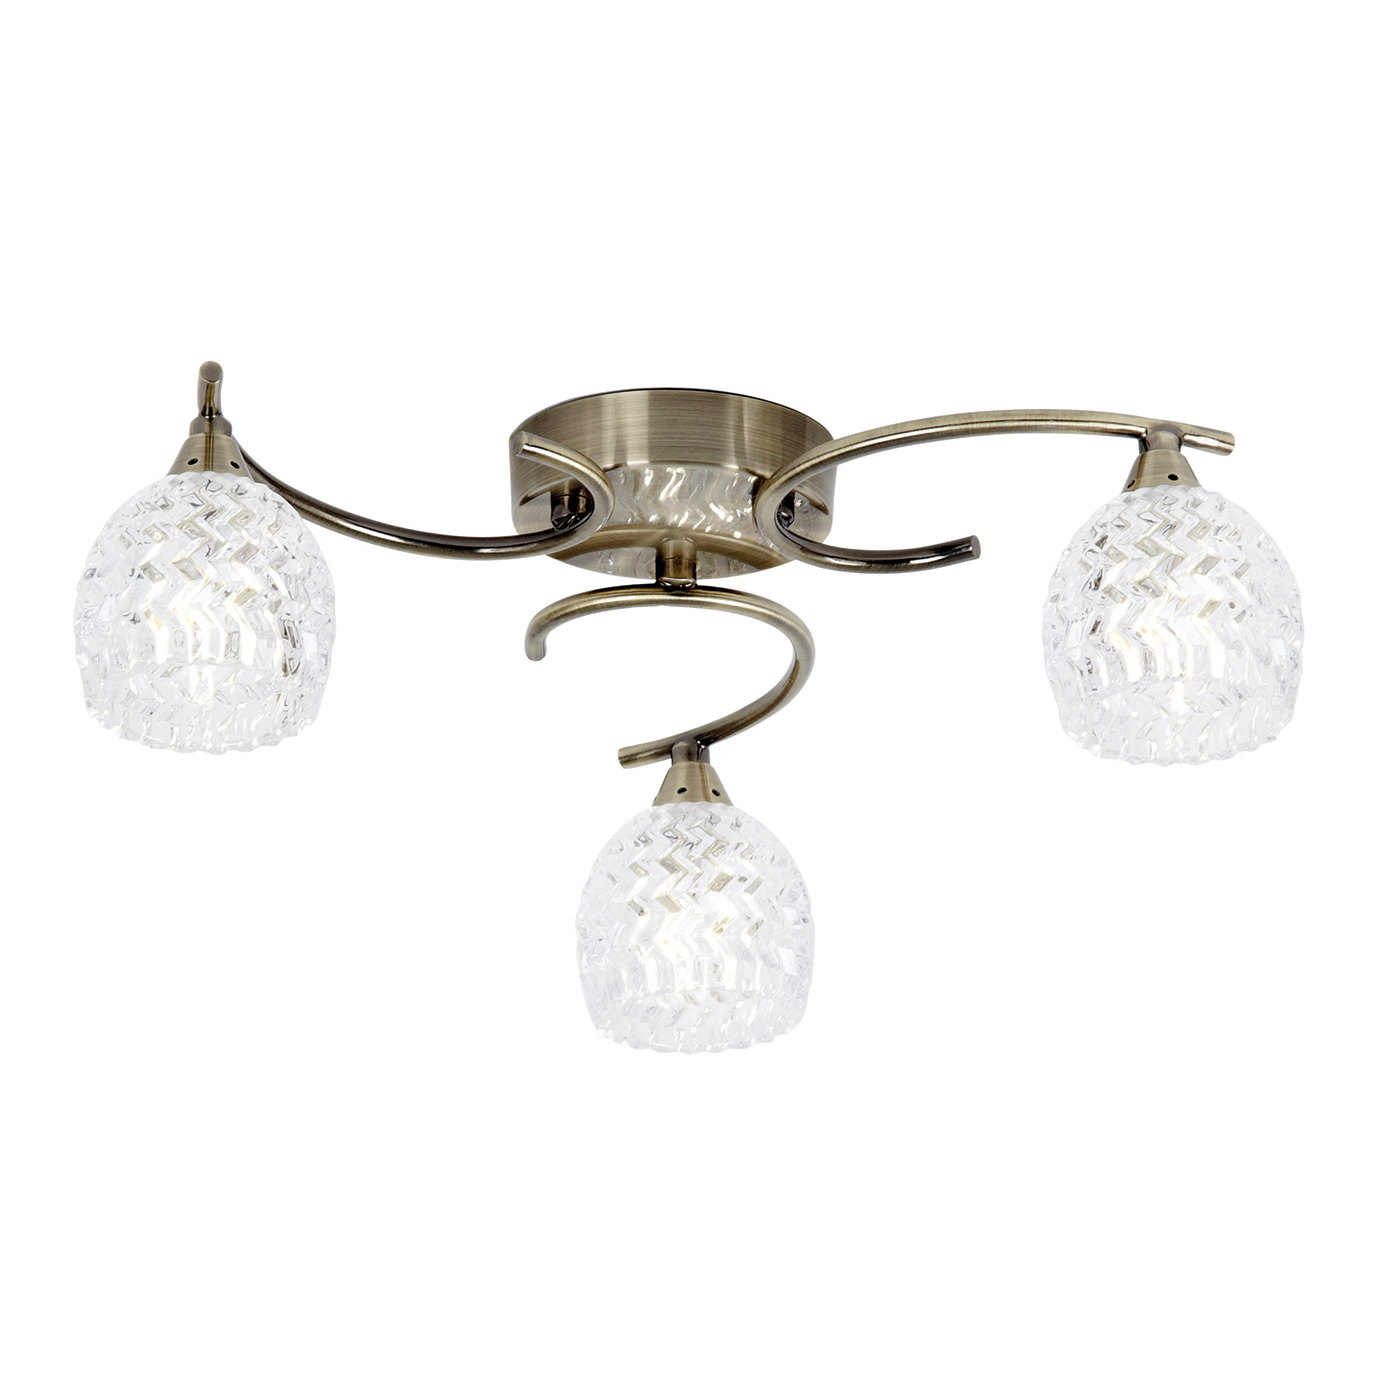 Endon Boyer ceiling light 3x 33W Antique brass effect clear glass pattern detail Thumbnail 1